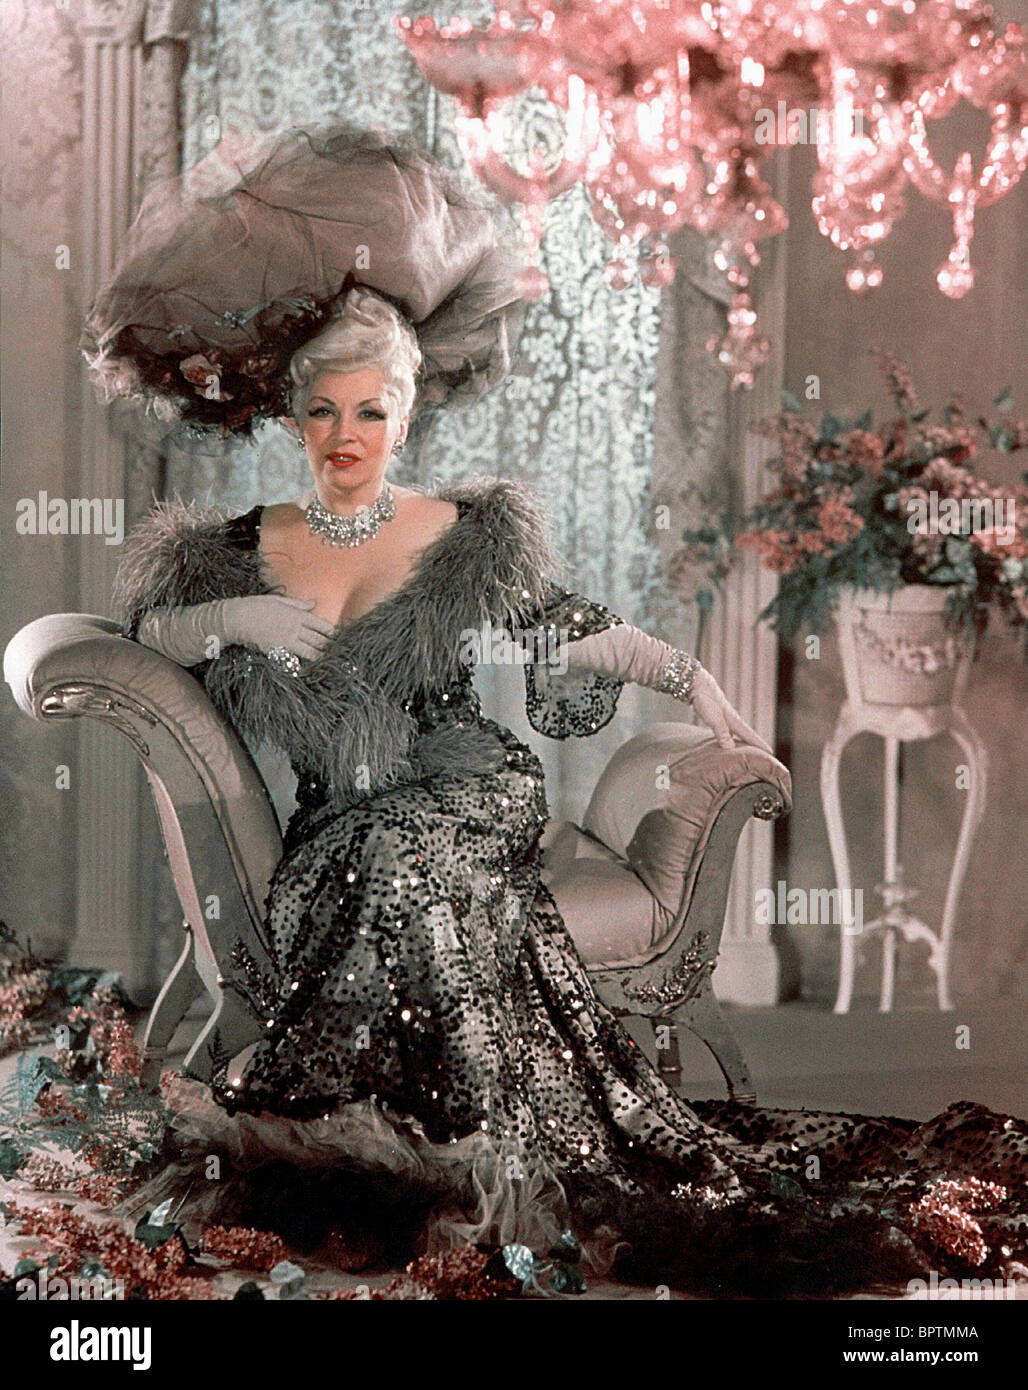 MAE WEST ACTRESS (1950) - Stock Image